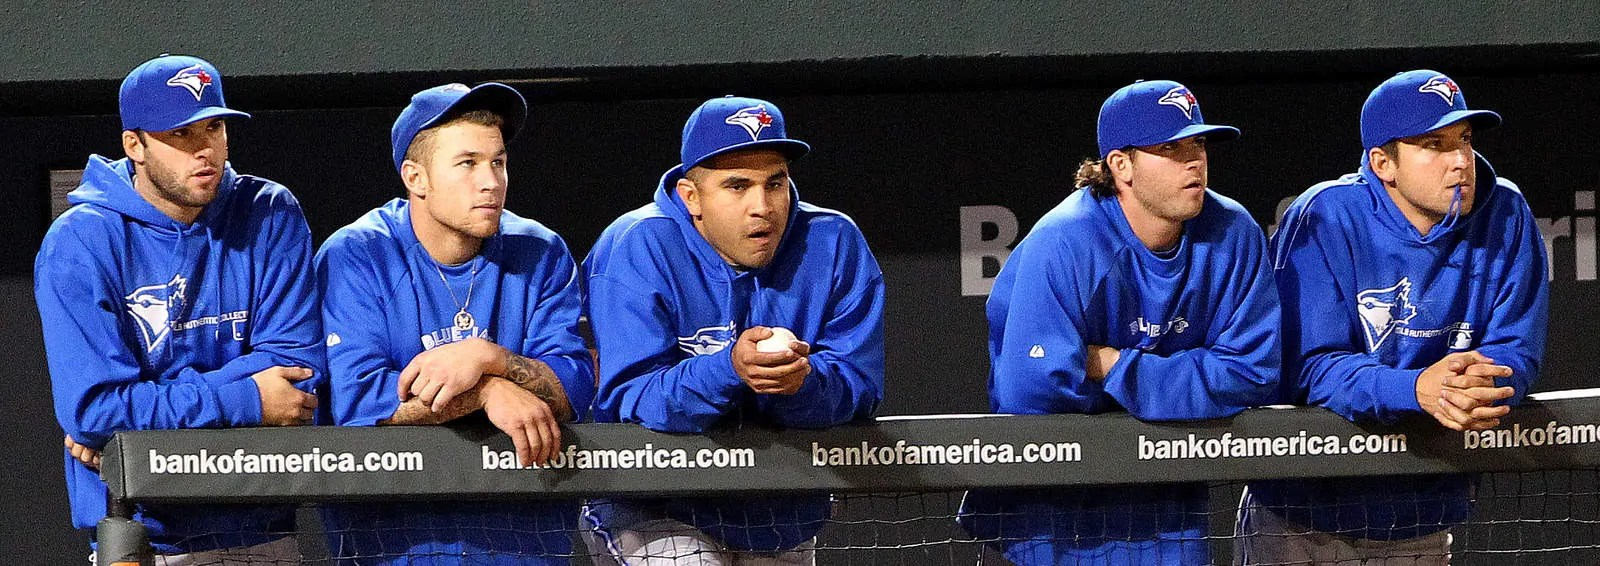 The Jays watching their game.